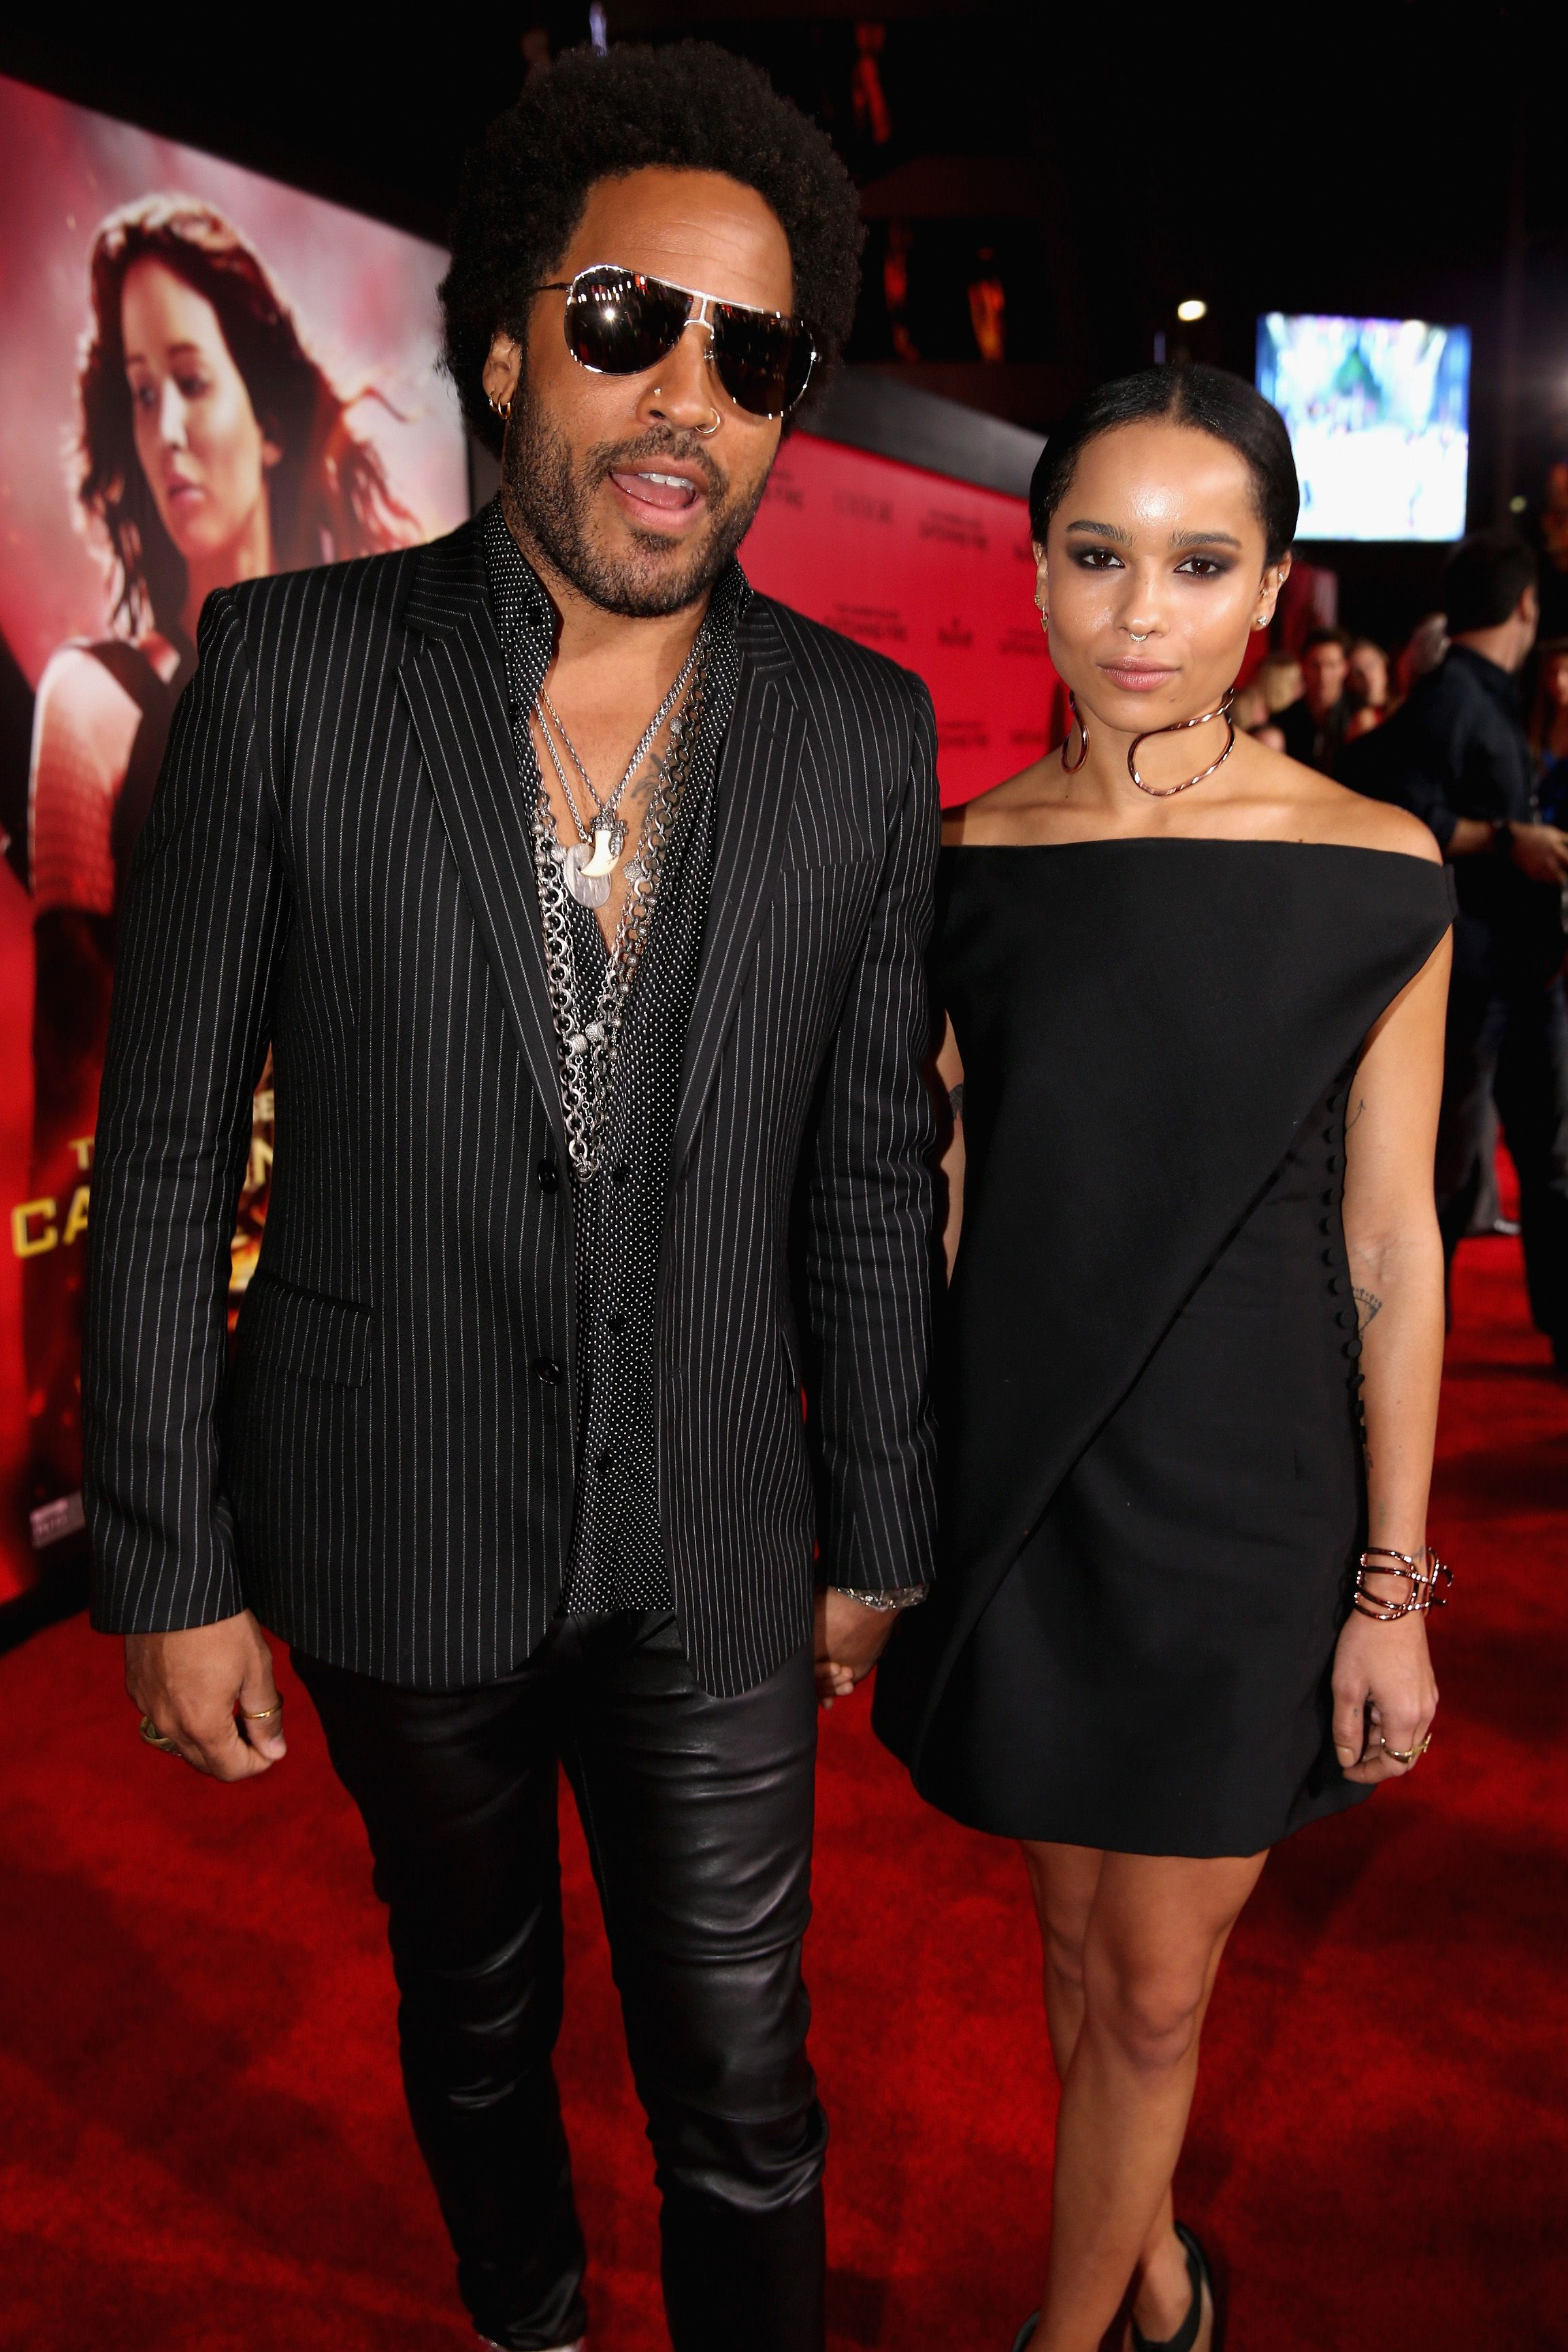 """Lenny Kravitz and Zoe Kravitz during the premiere of  """"The Hunger Games: Catching Fire"""" on November 18, 2013. 